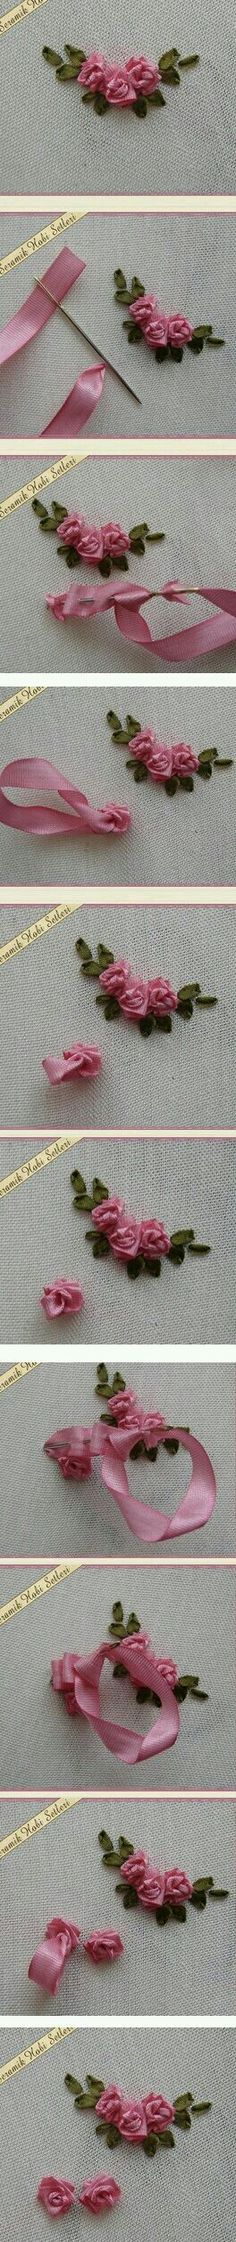 Wonderful Ribbon Embroidery Flowers by Hand Ideas. Enchanting Ribbon Embroidery Flowers by Hand Ideas. Ribbon Embroidery Tutorial, Silk Ribbon Embroidery, Cross Stitch Embroidery, Embroidery Patterns, Hand Embroidery, Flower Embroidery, Machine Embroidery, Ribbon Art, Ribbon Crafts